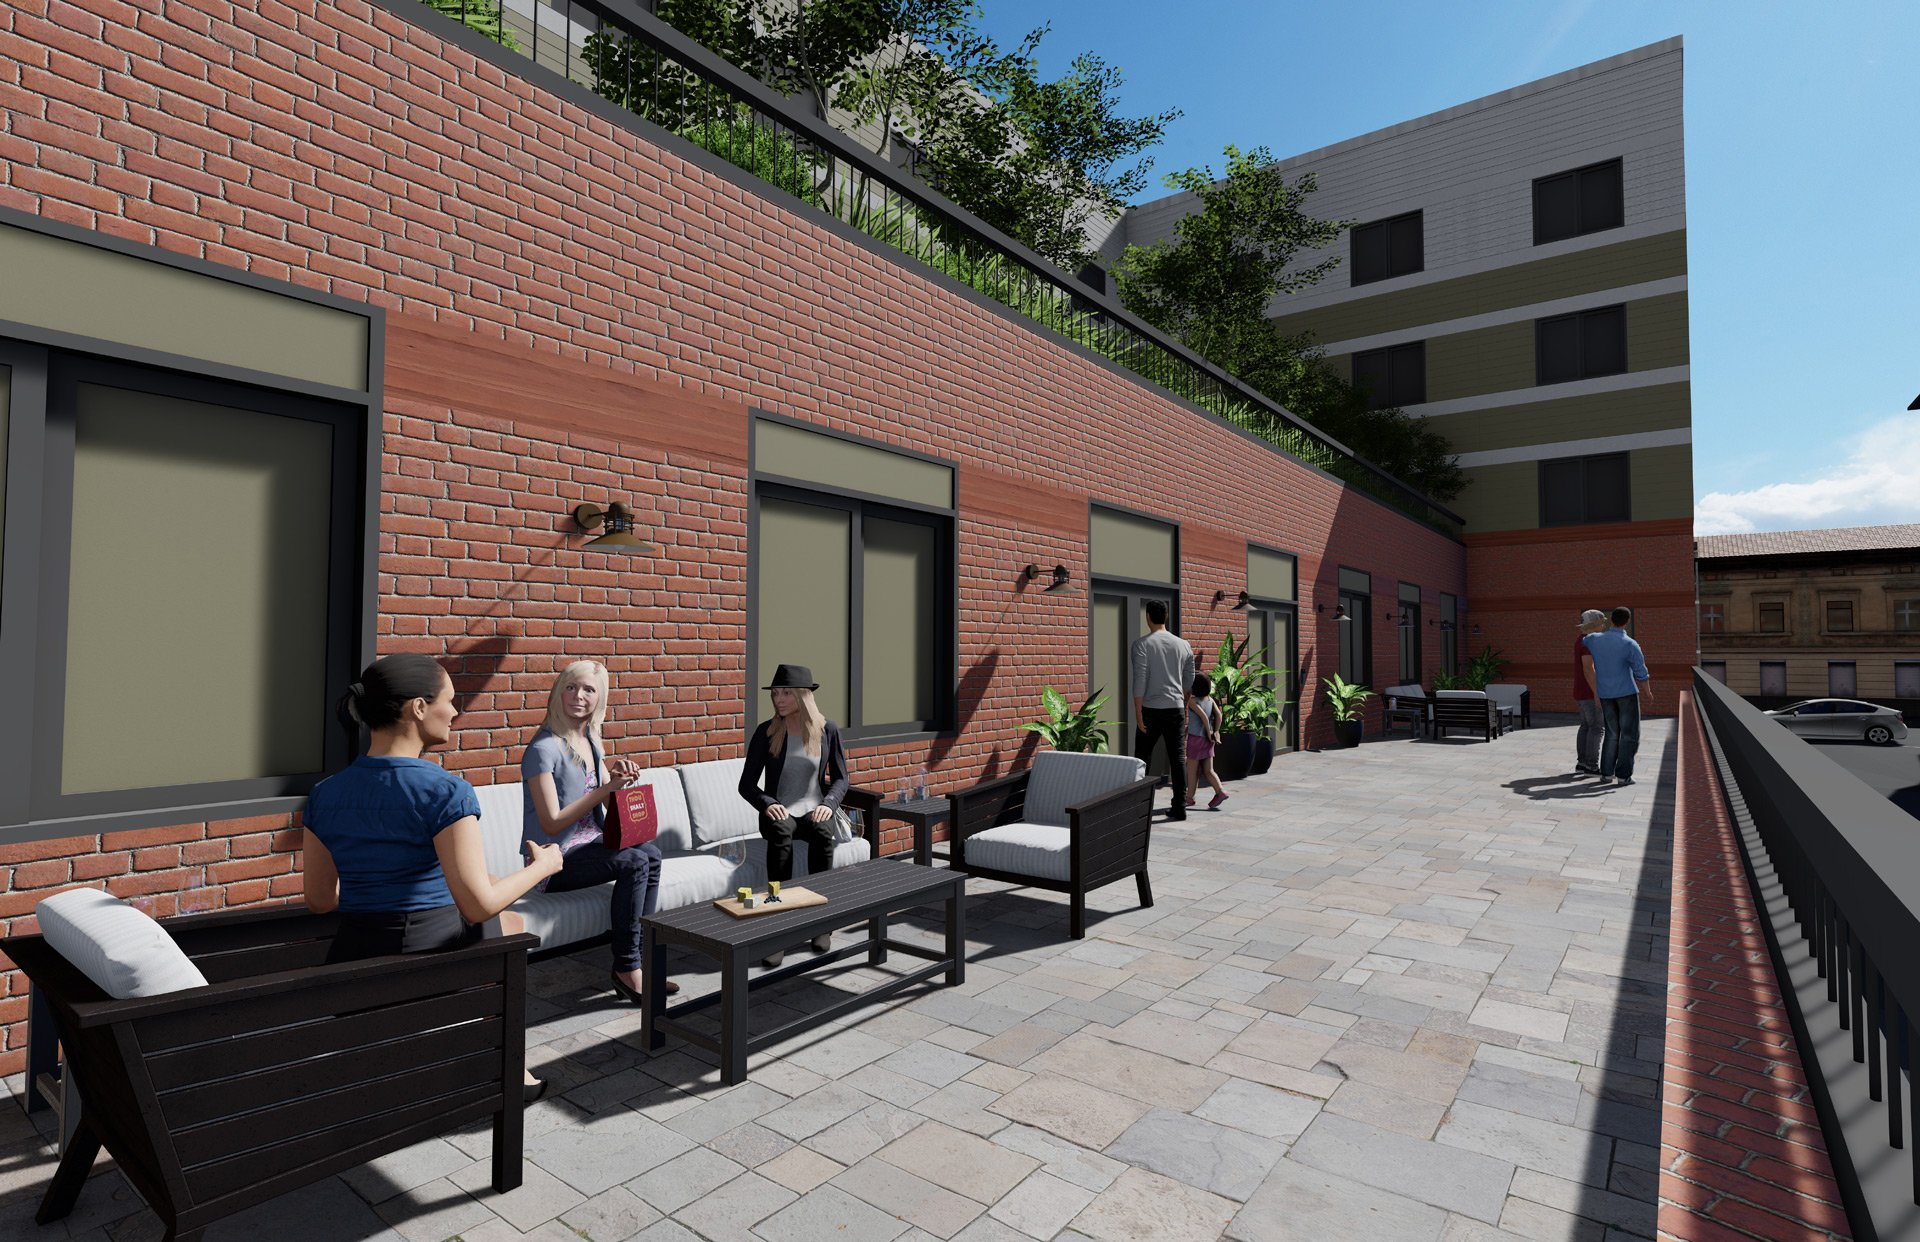 murphy-brothers-contracting-commercial-harrison-playhouse-exterior-terrace-02